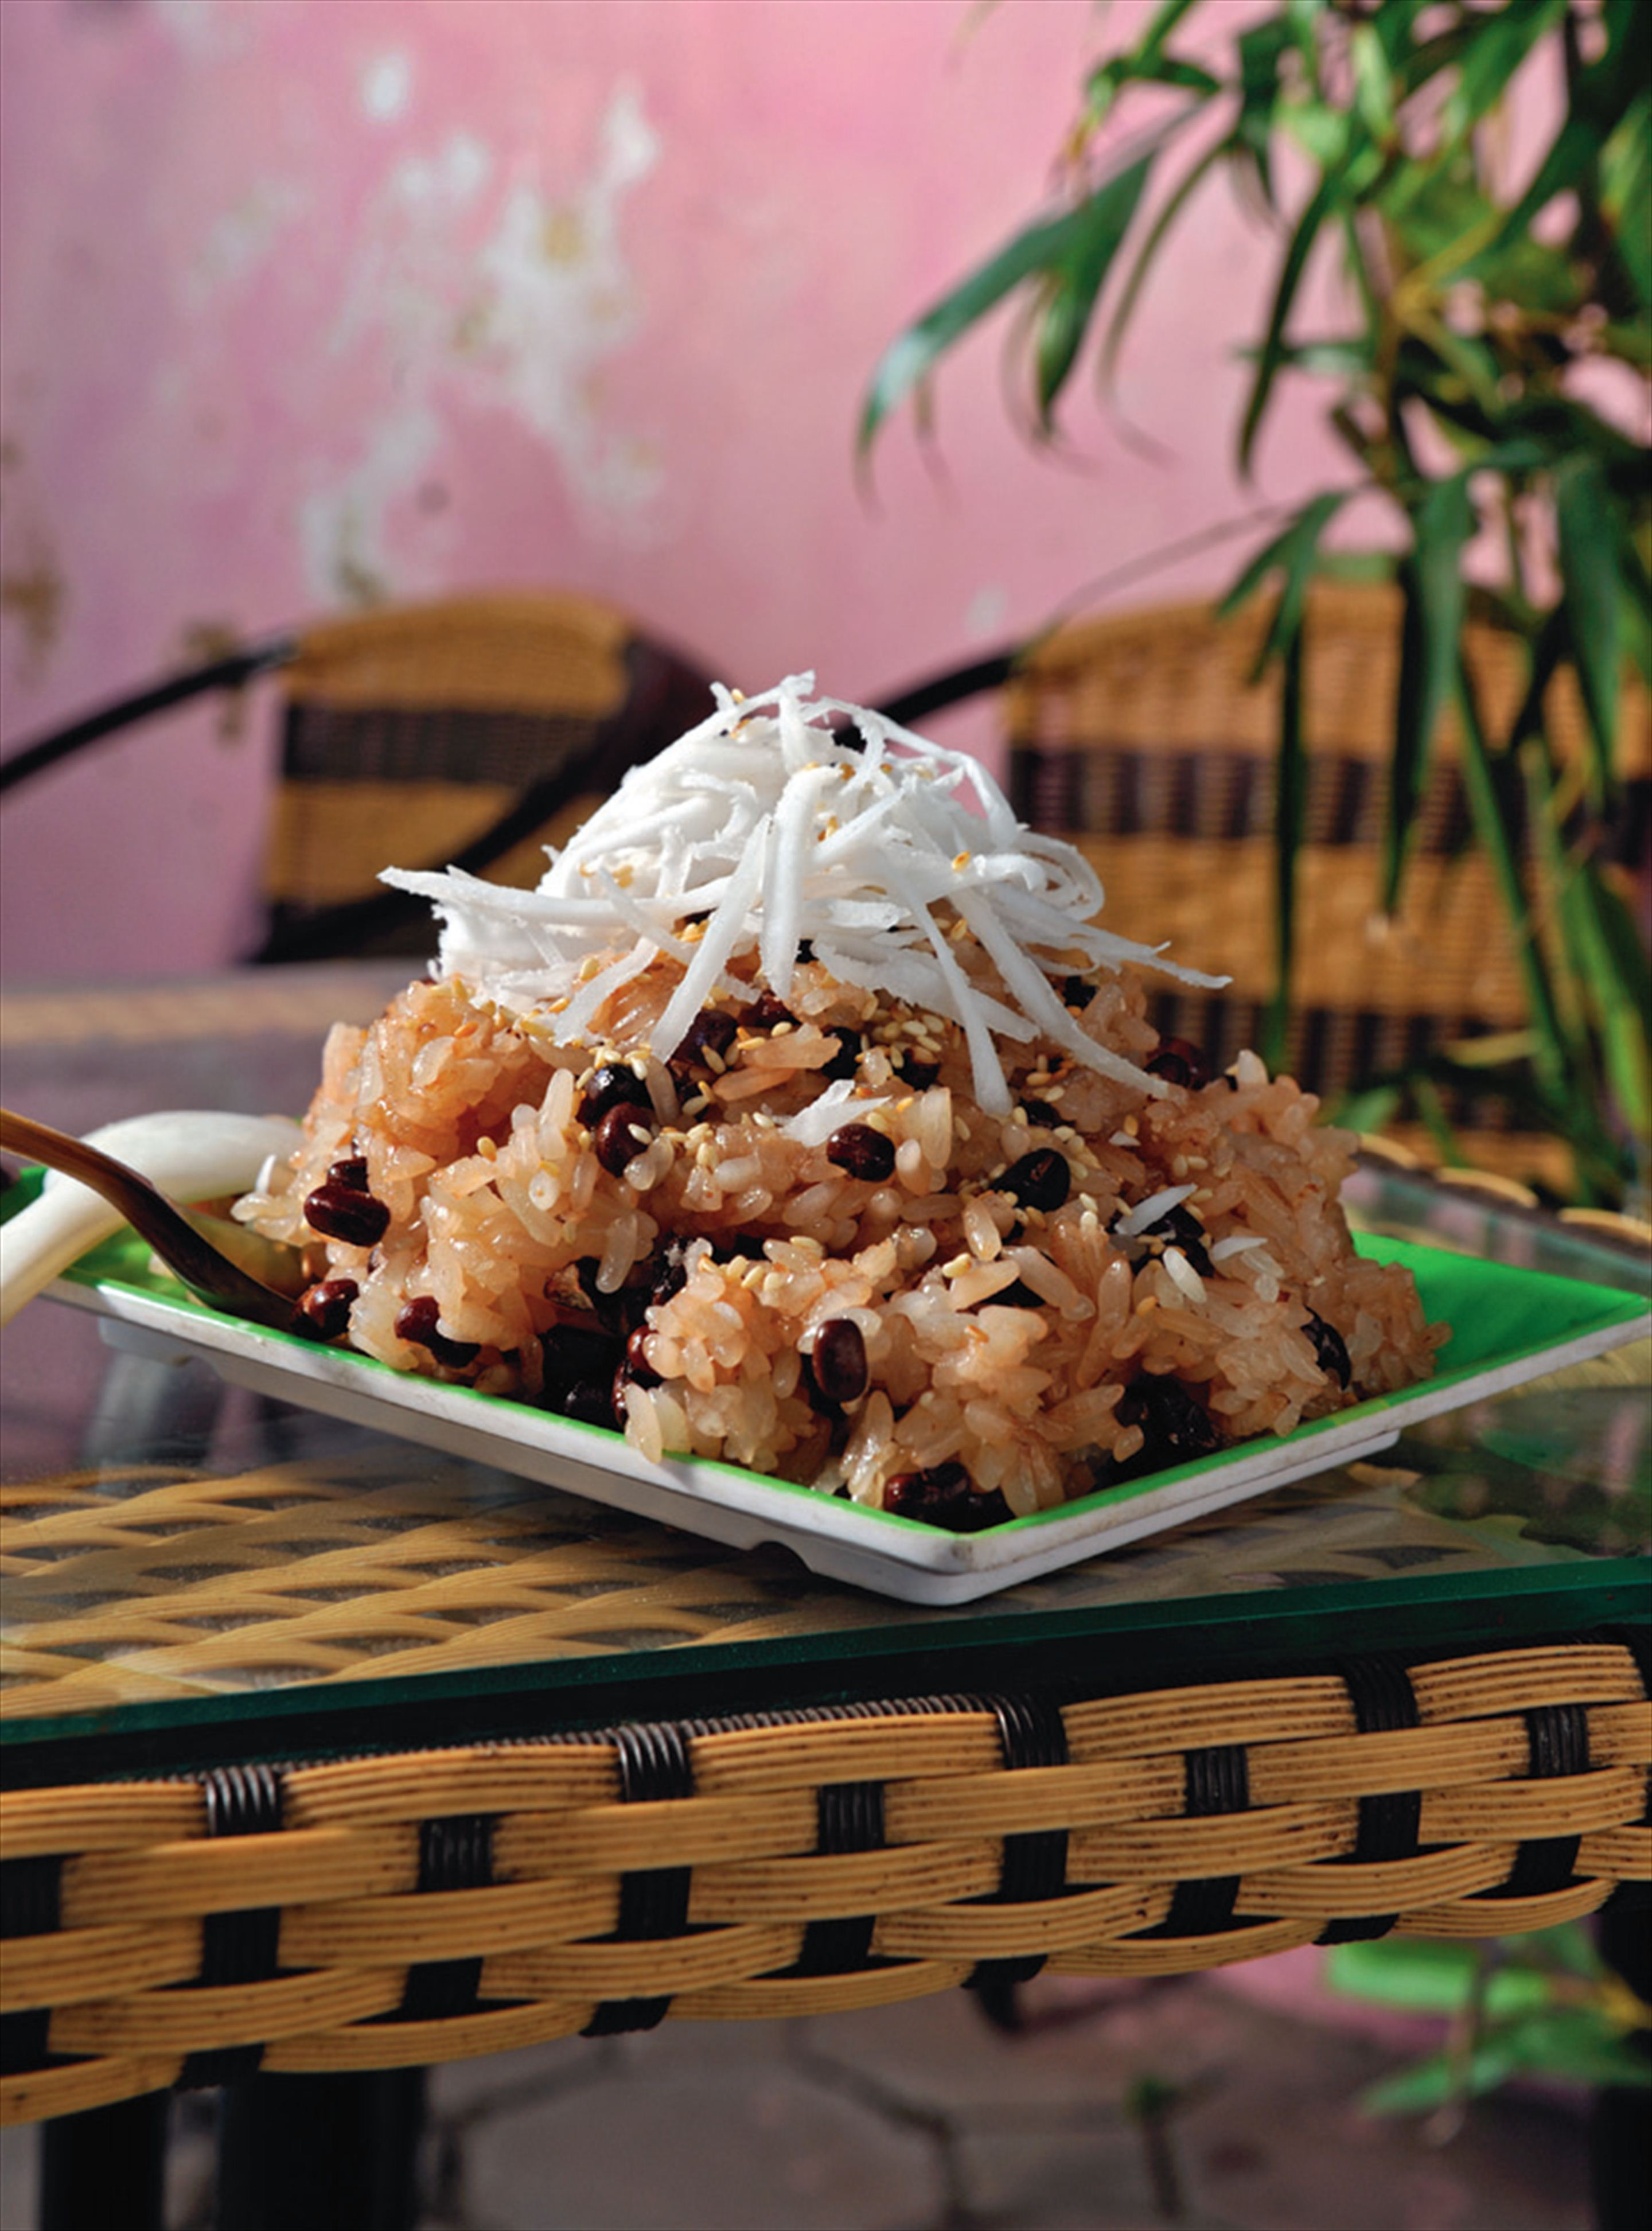 Sticky rice with red beans, coconut and sesame seeds